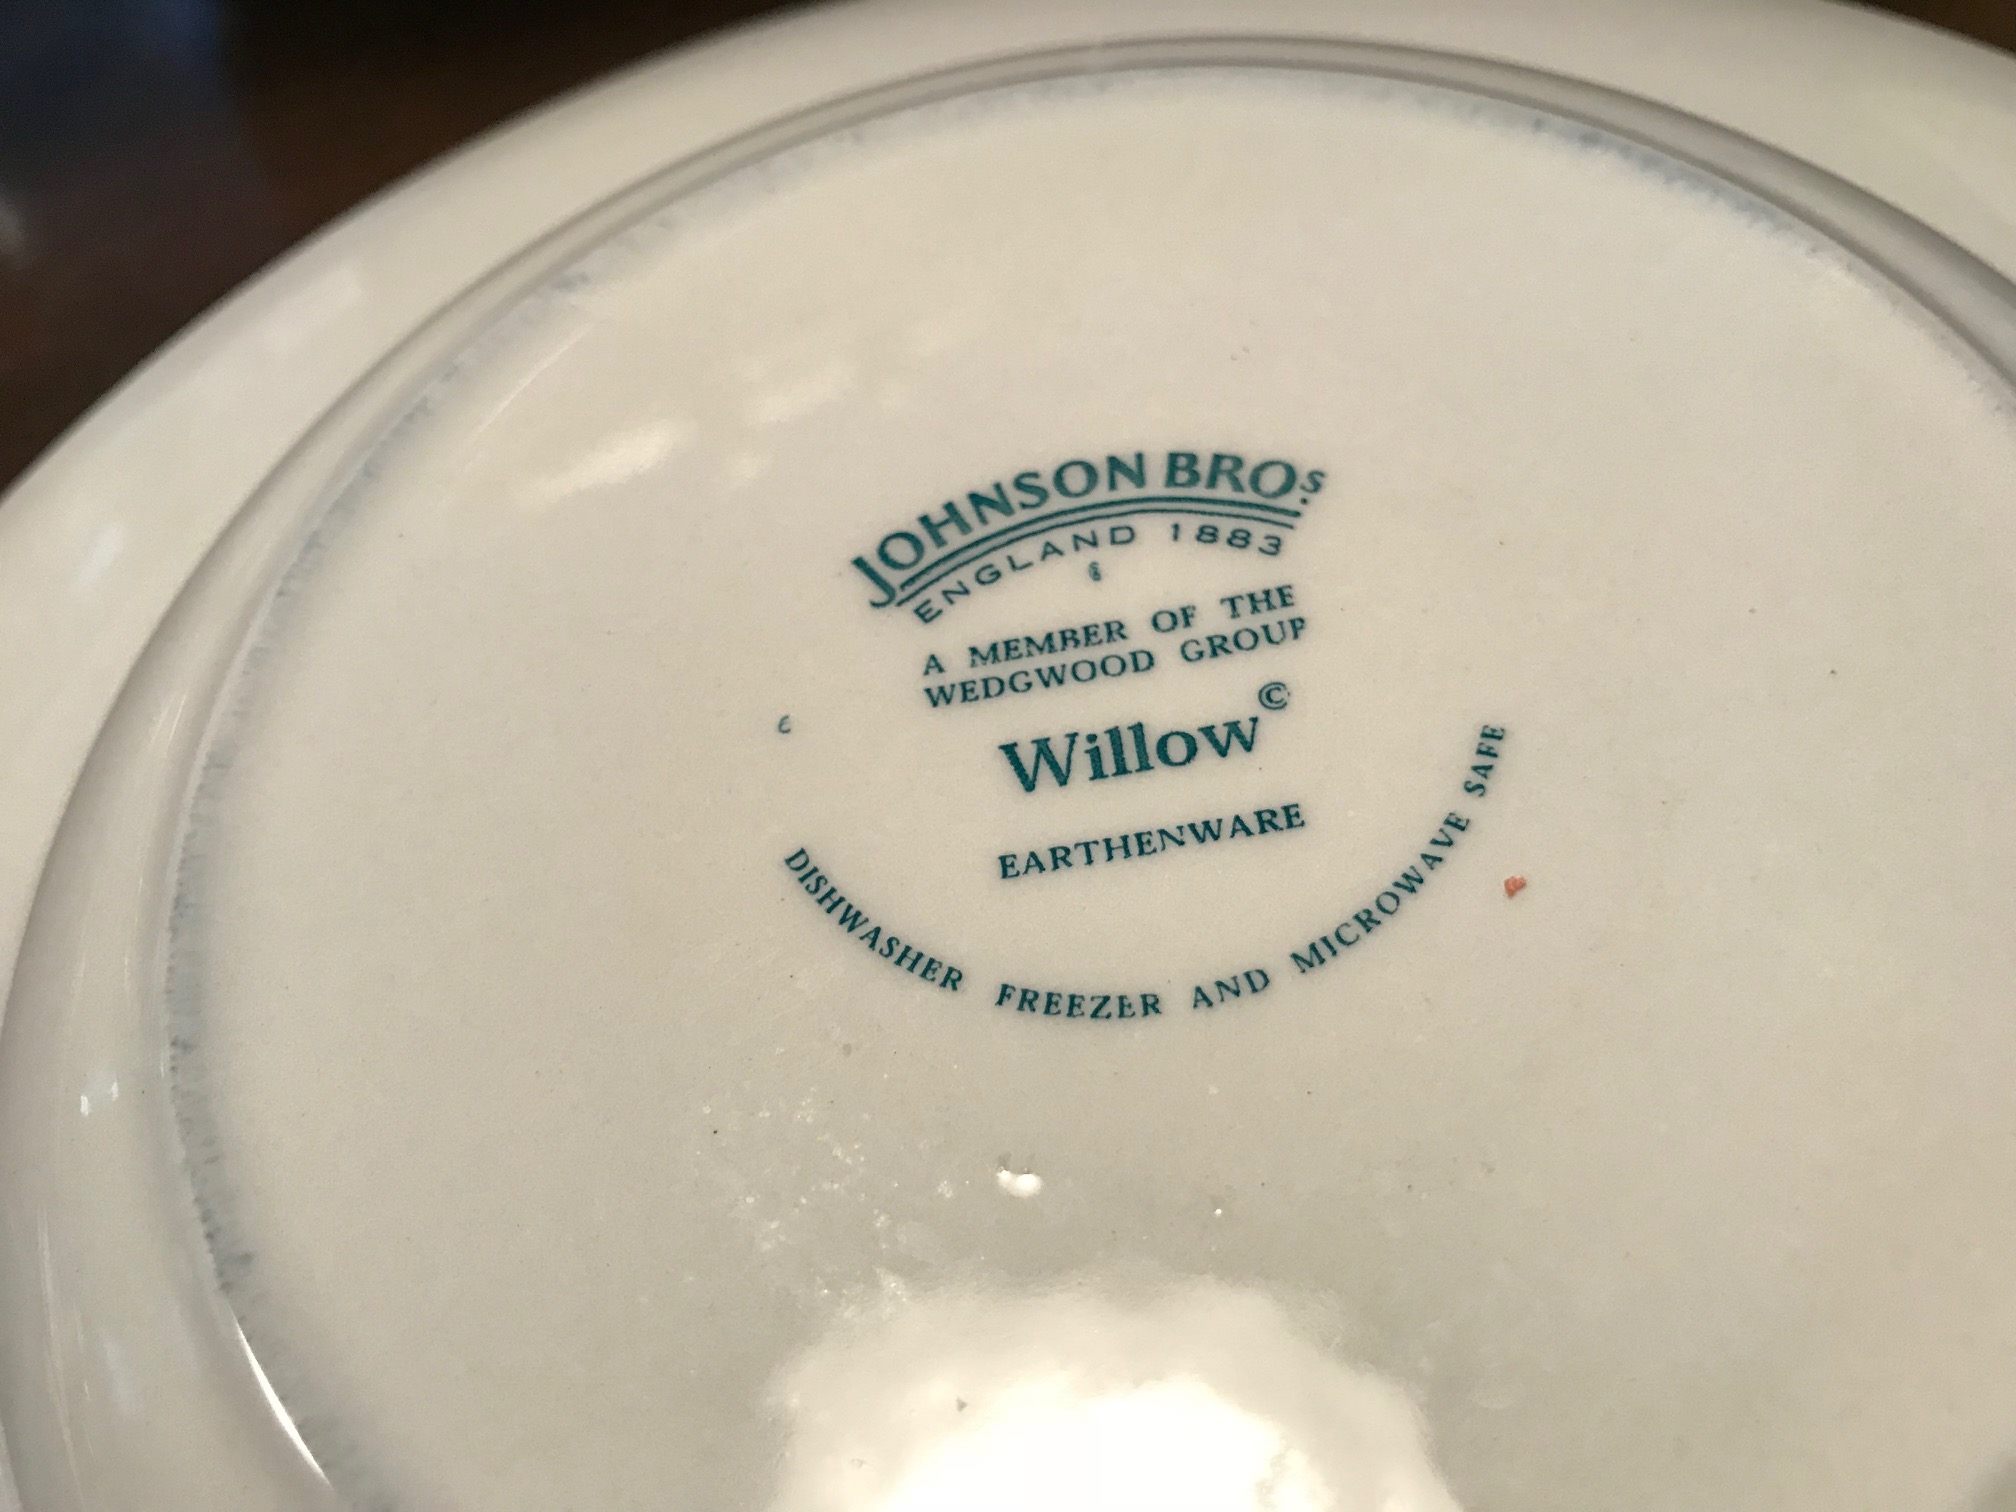 Johnson Brothers Wedgwood Group Willow Earthenware Pasta Bowl Tamara Rubin Lead Safe Mama